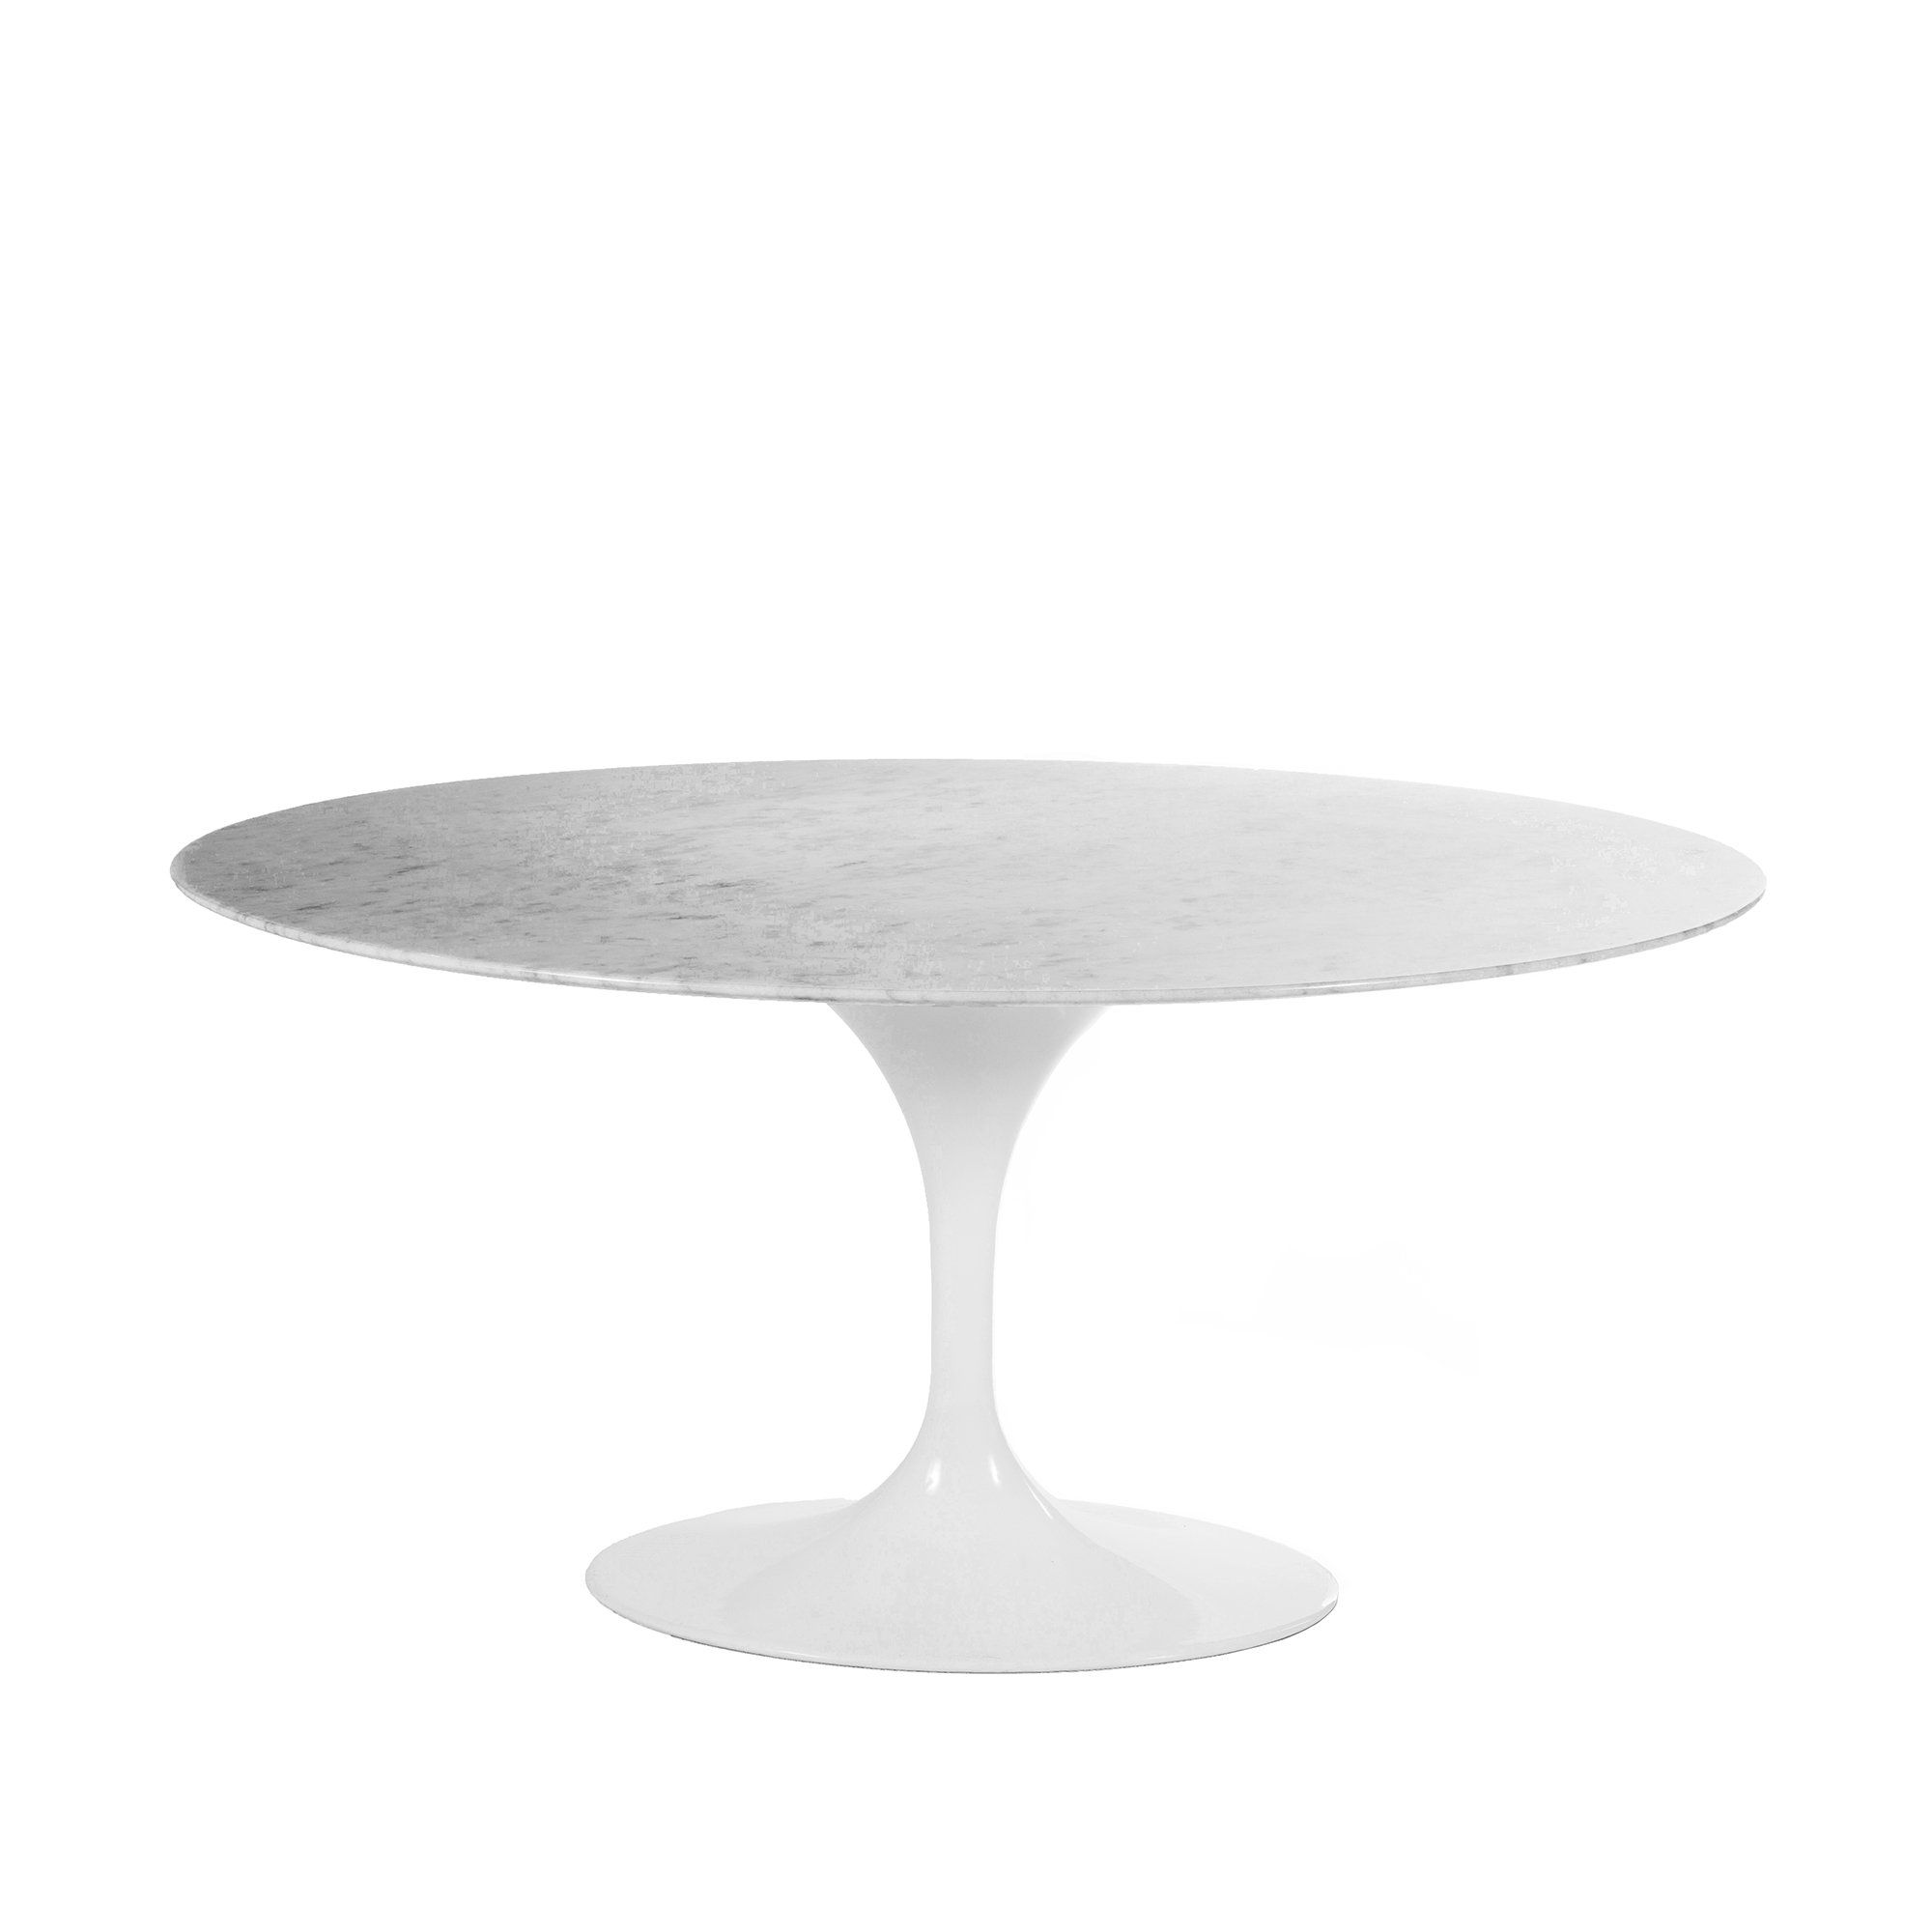 Carrara Marble Tulip Dining Table 60 X 42 Oval Tulip Dining